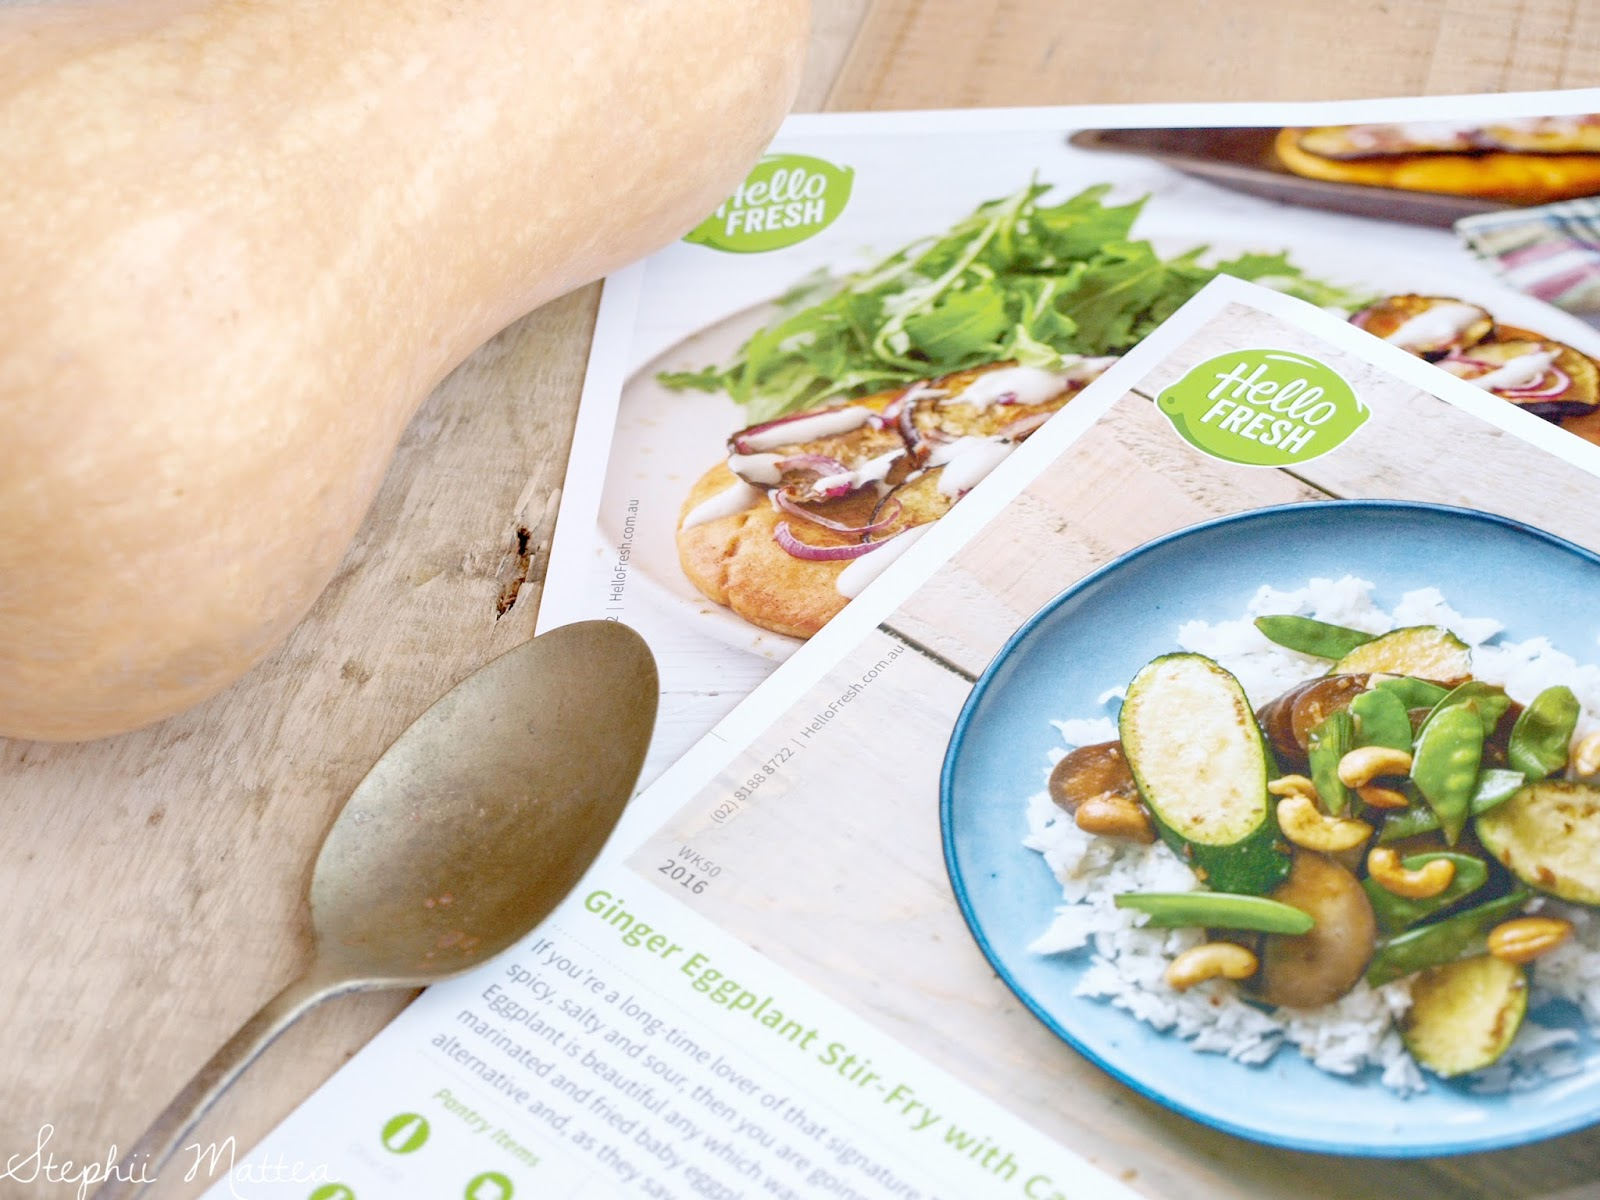 Buy Meal Kit Delivery Service Hellofresh For Sale On Amazon